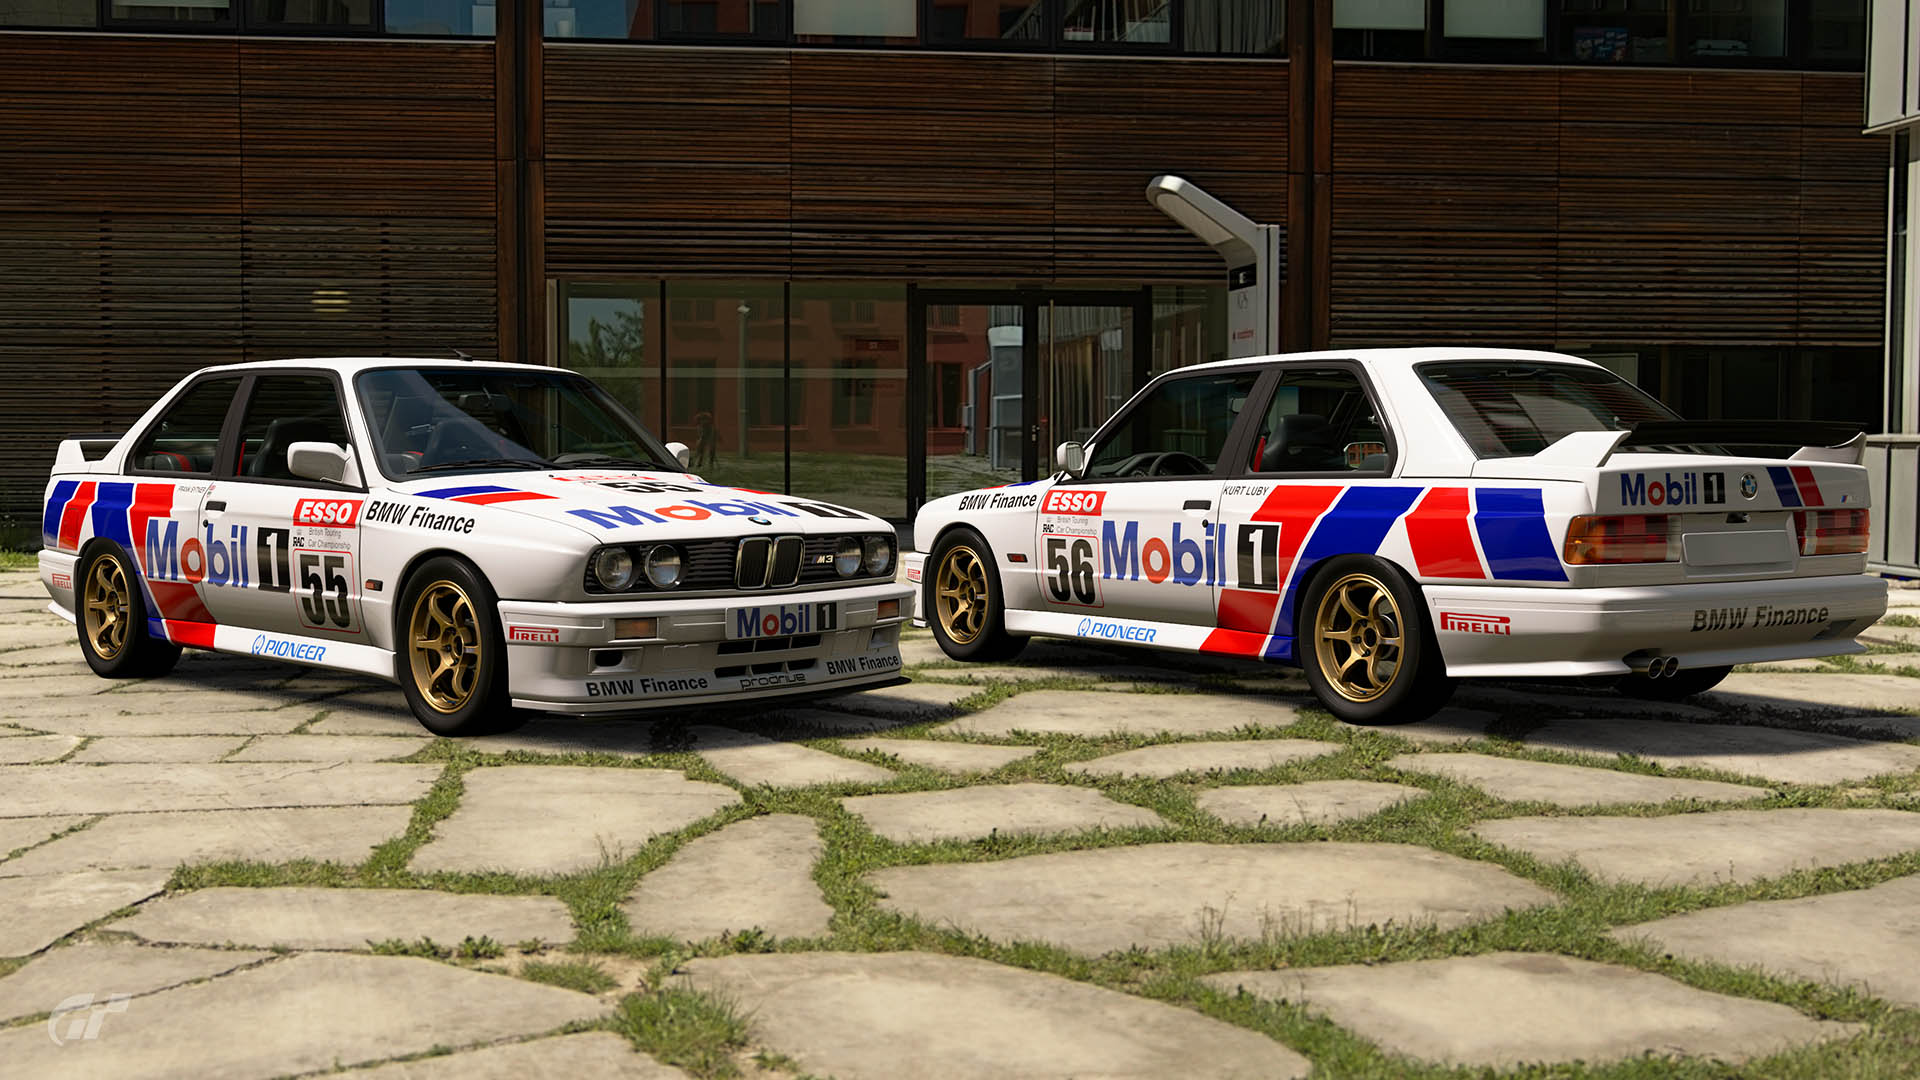 1990 BTCC BMW Finance Mobil 1 Racing Liveries – GT Sport